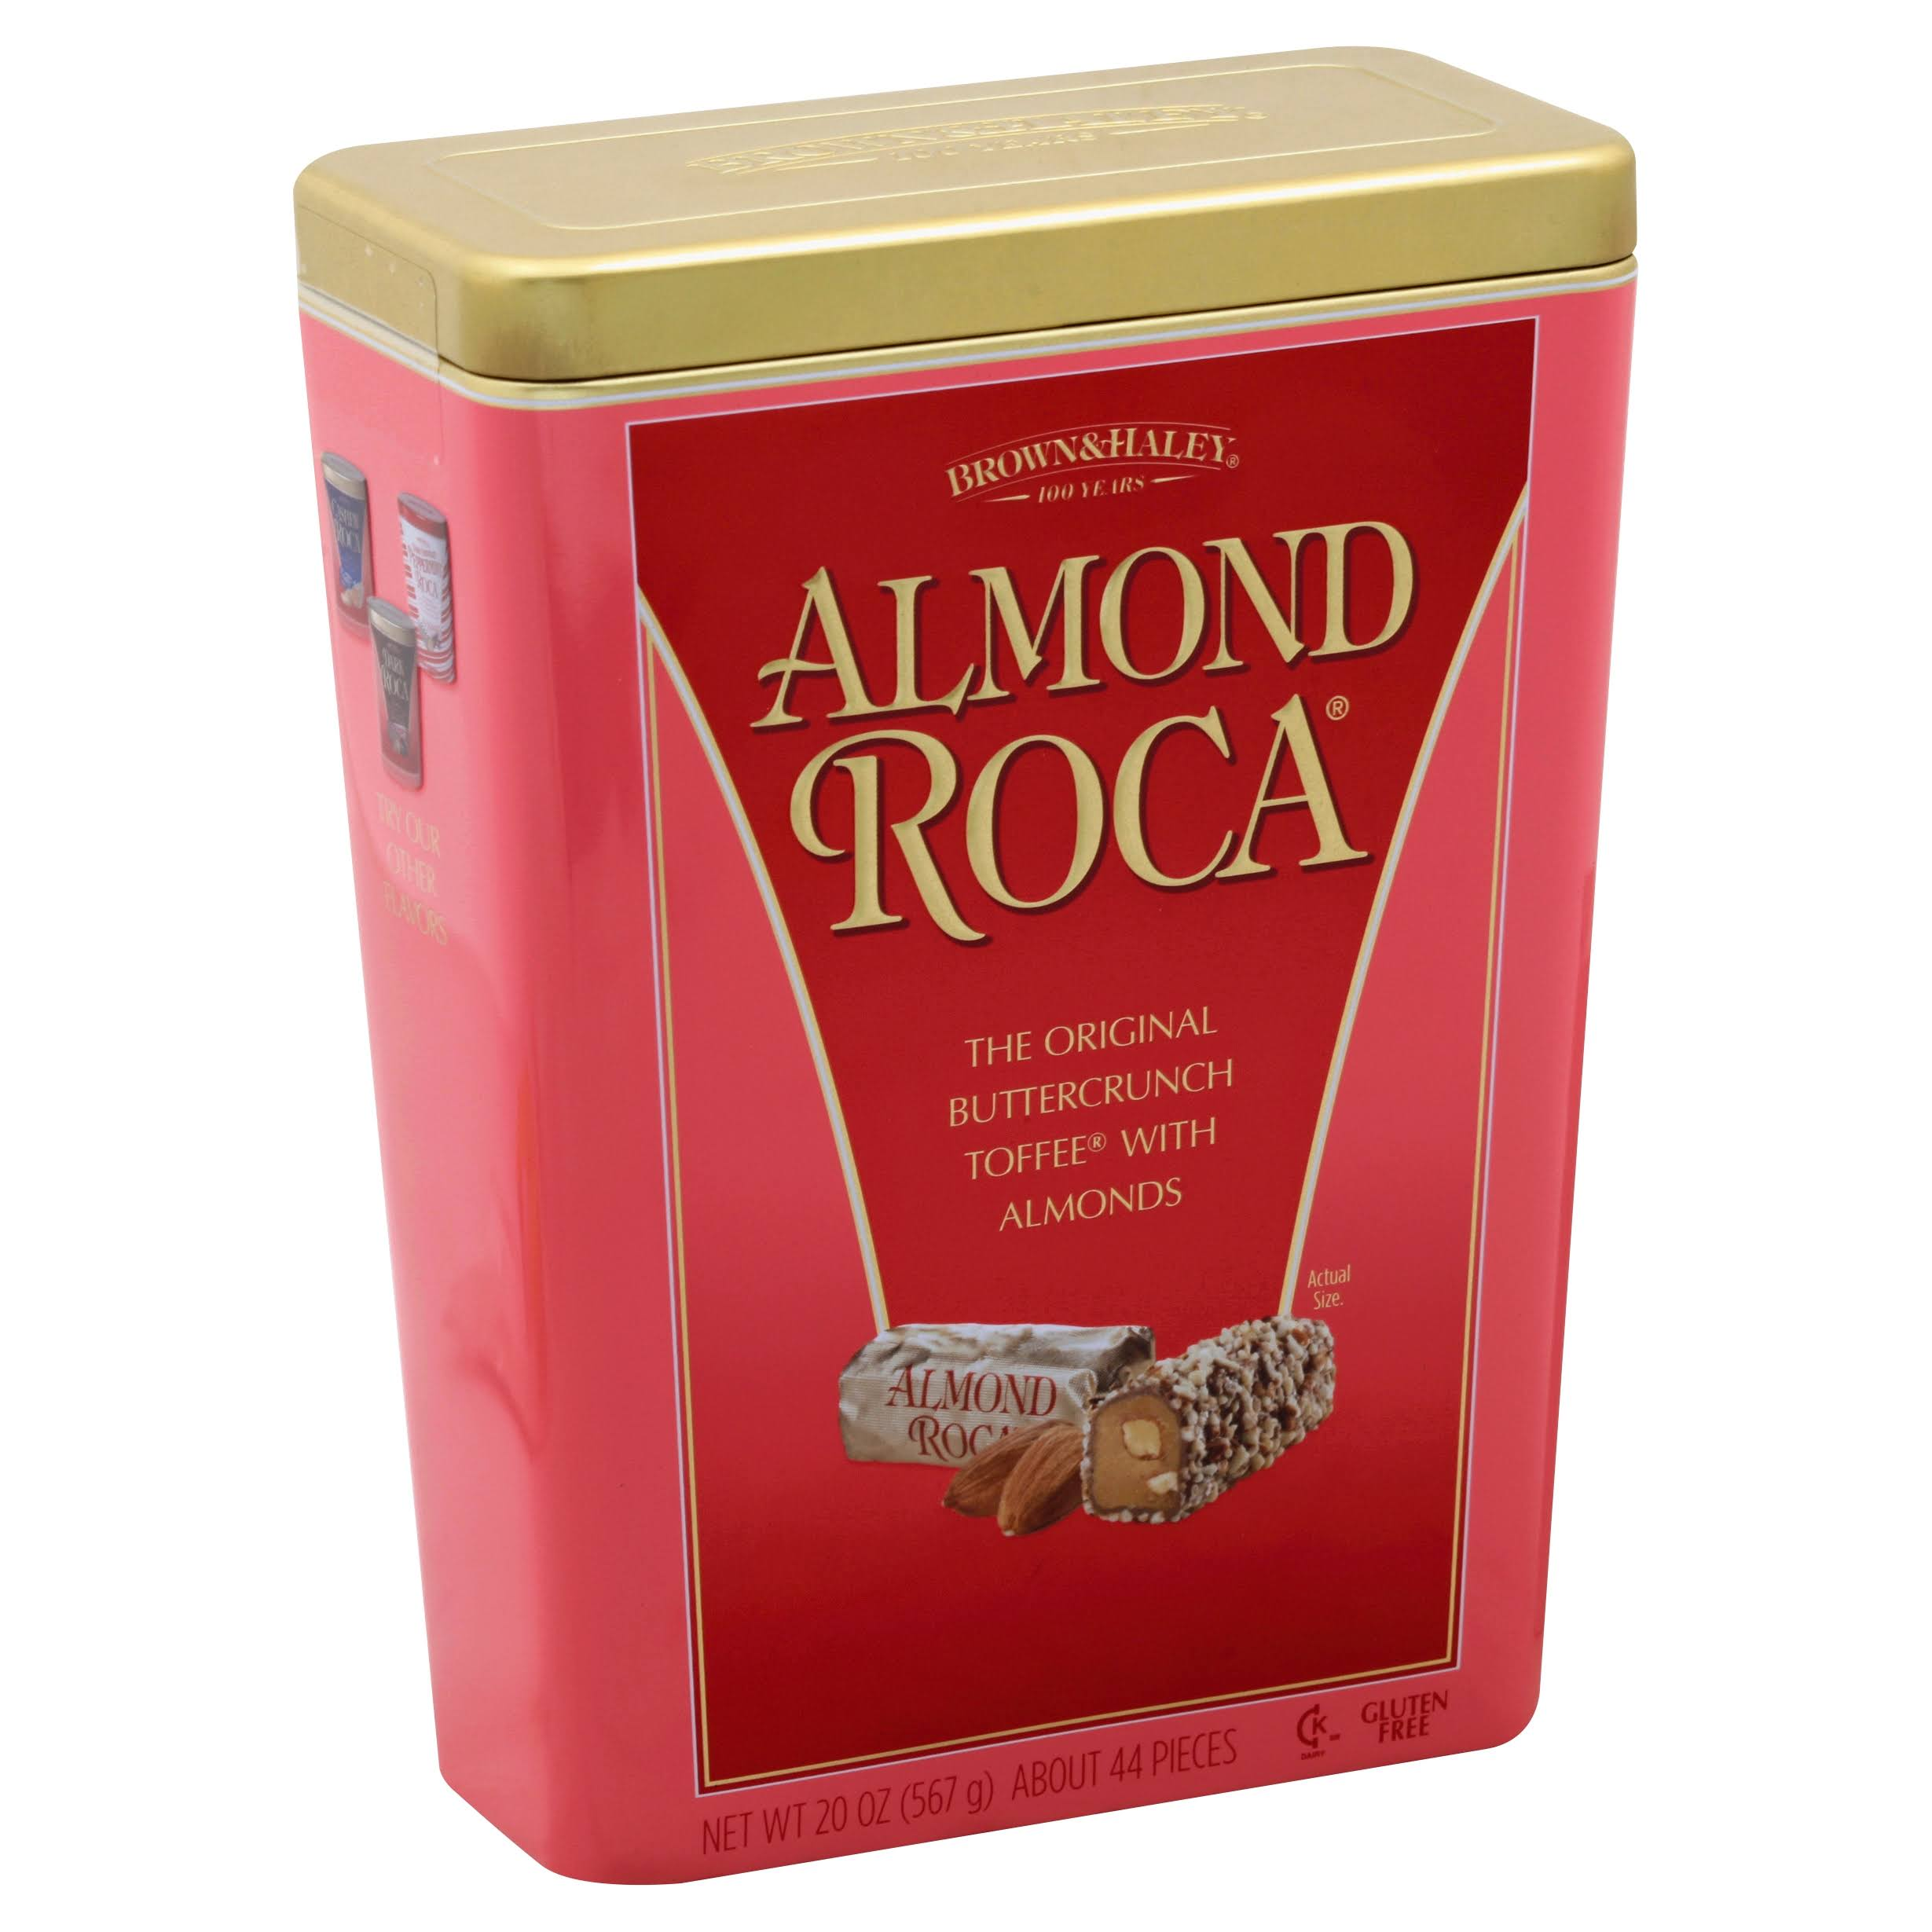 Almond Roca The Original Buttercrunch Toffee - with Almonds